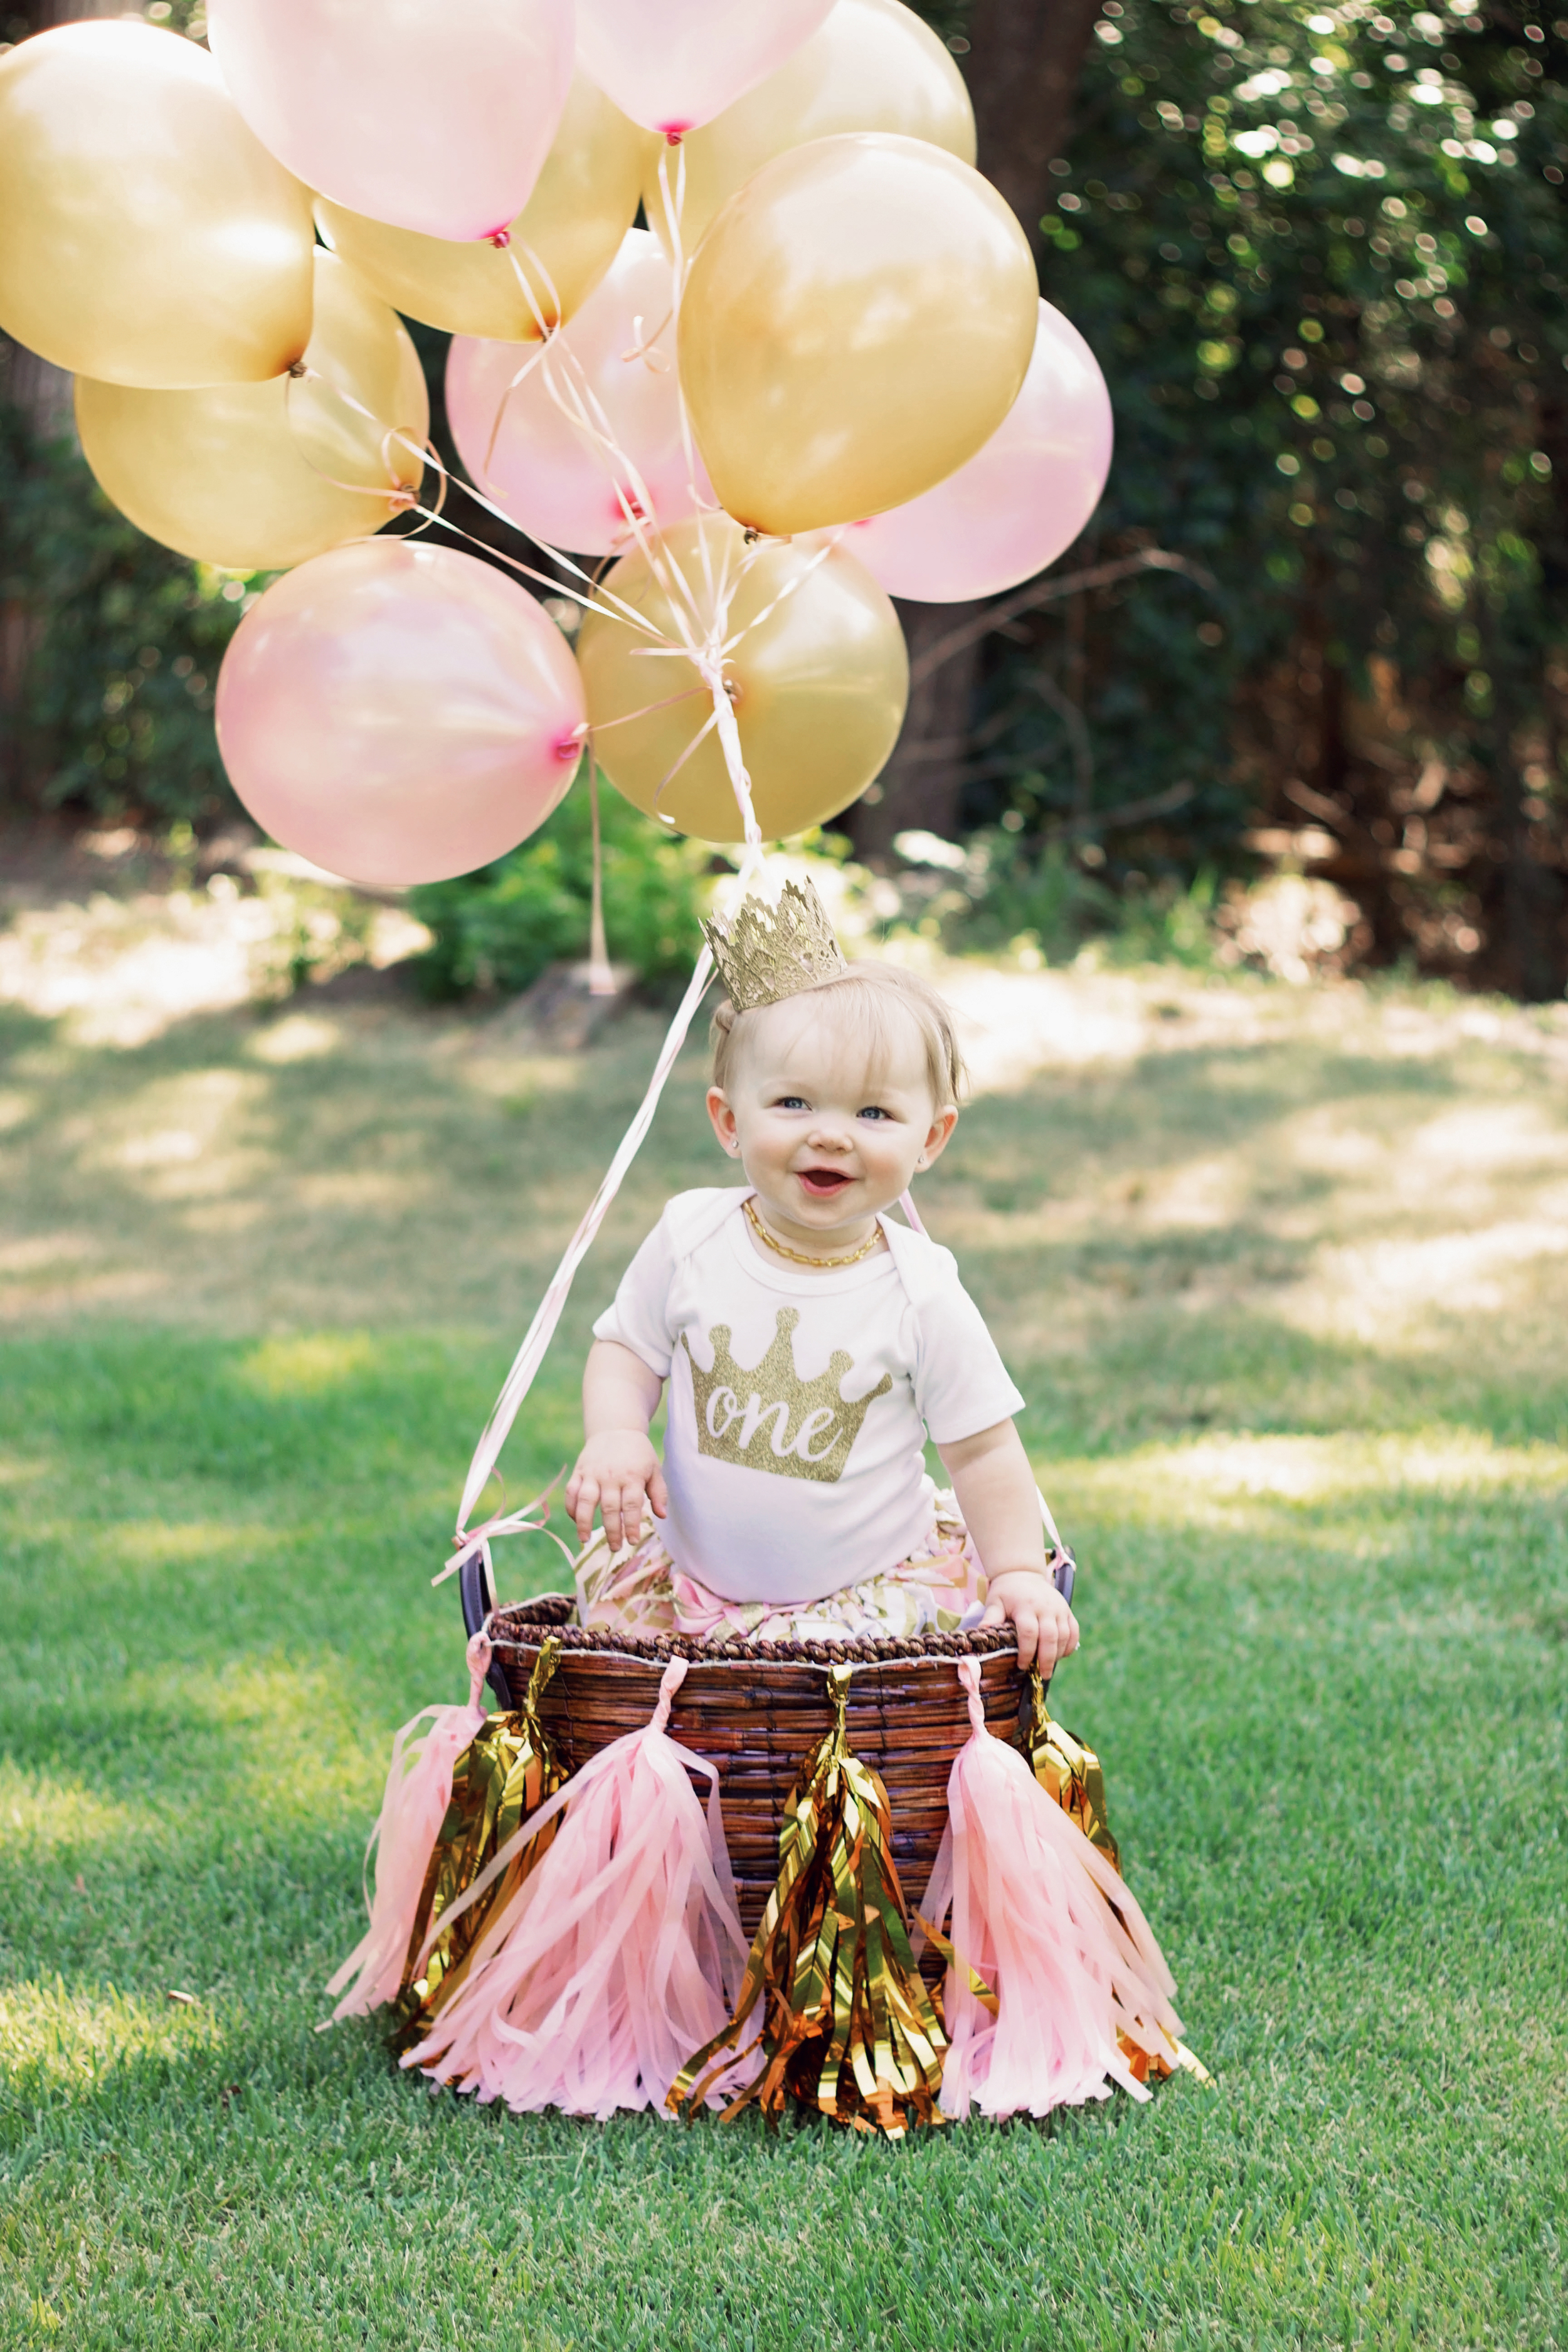 We can work together to customize your little one's session!